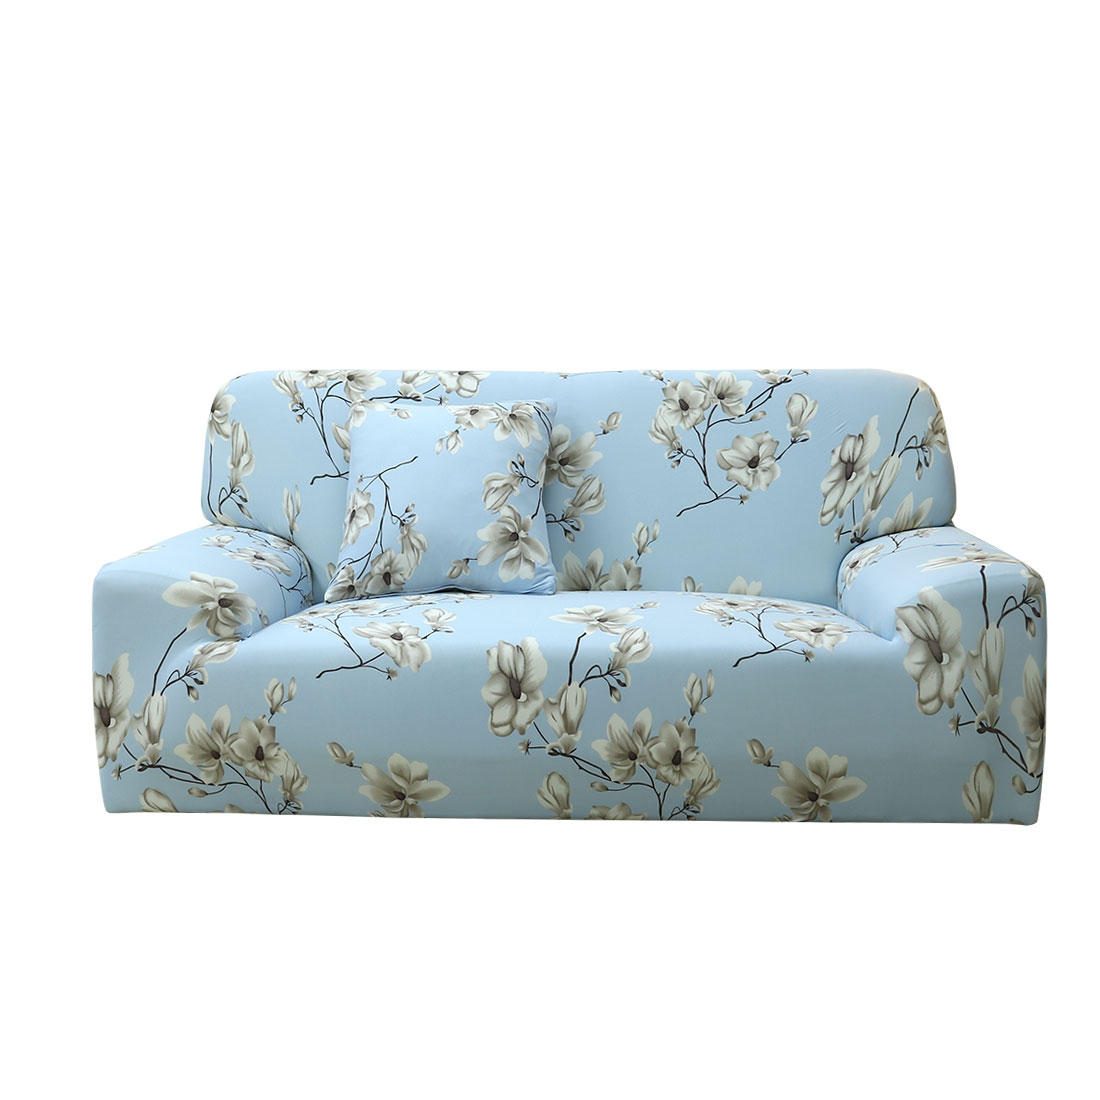 Home Sofa Cover 1 2 3 4 Seater Cover Full Covers Slipcover #1 (57 x 72 Inch) - image 7 de 7